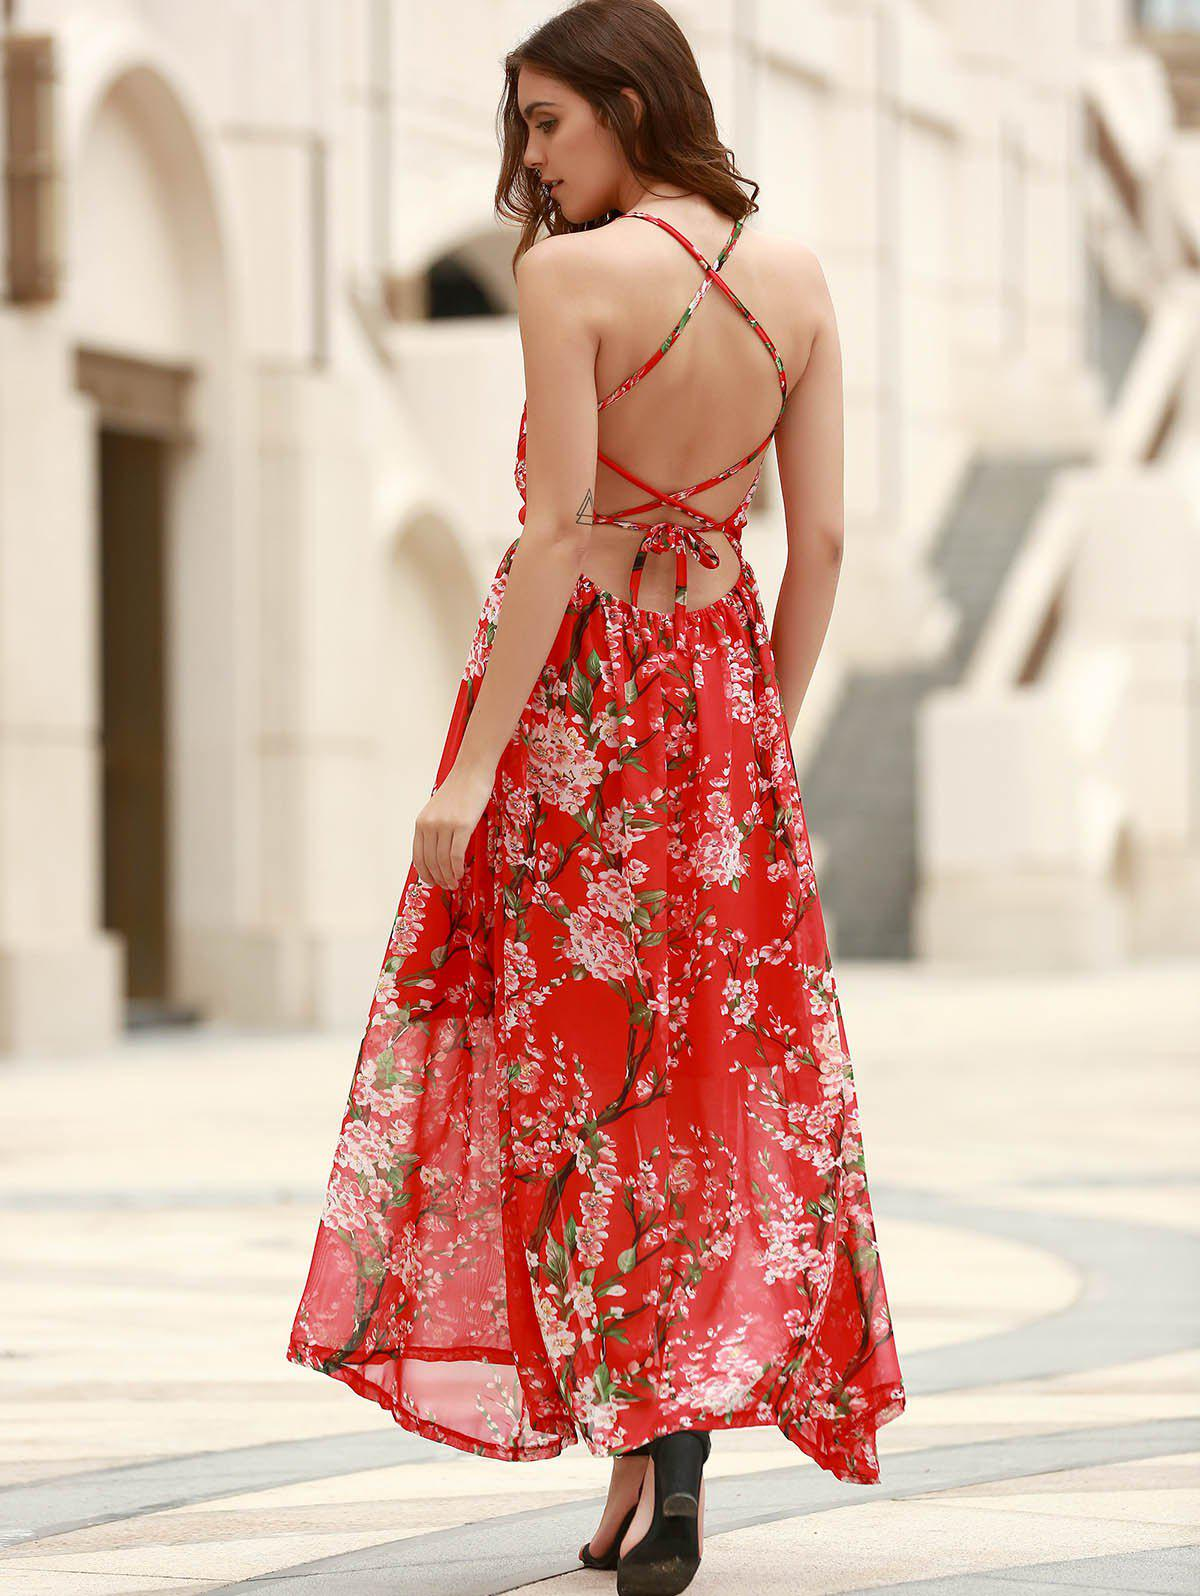 Bohemian Floral Print Spaghetti Strap Criss-Cross Women's Chiffon Dress - RED ONE SIZE(FIT SIZE XS TO M)